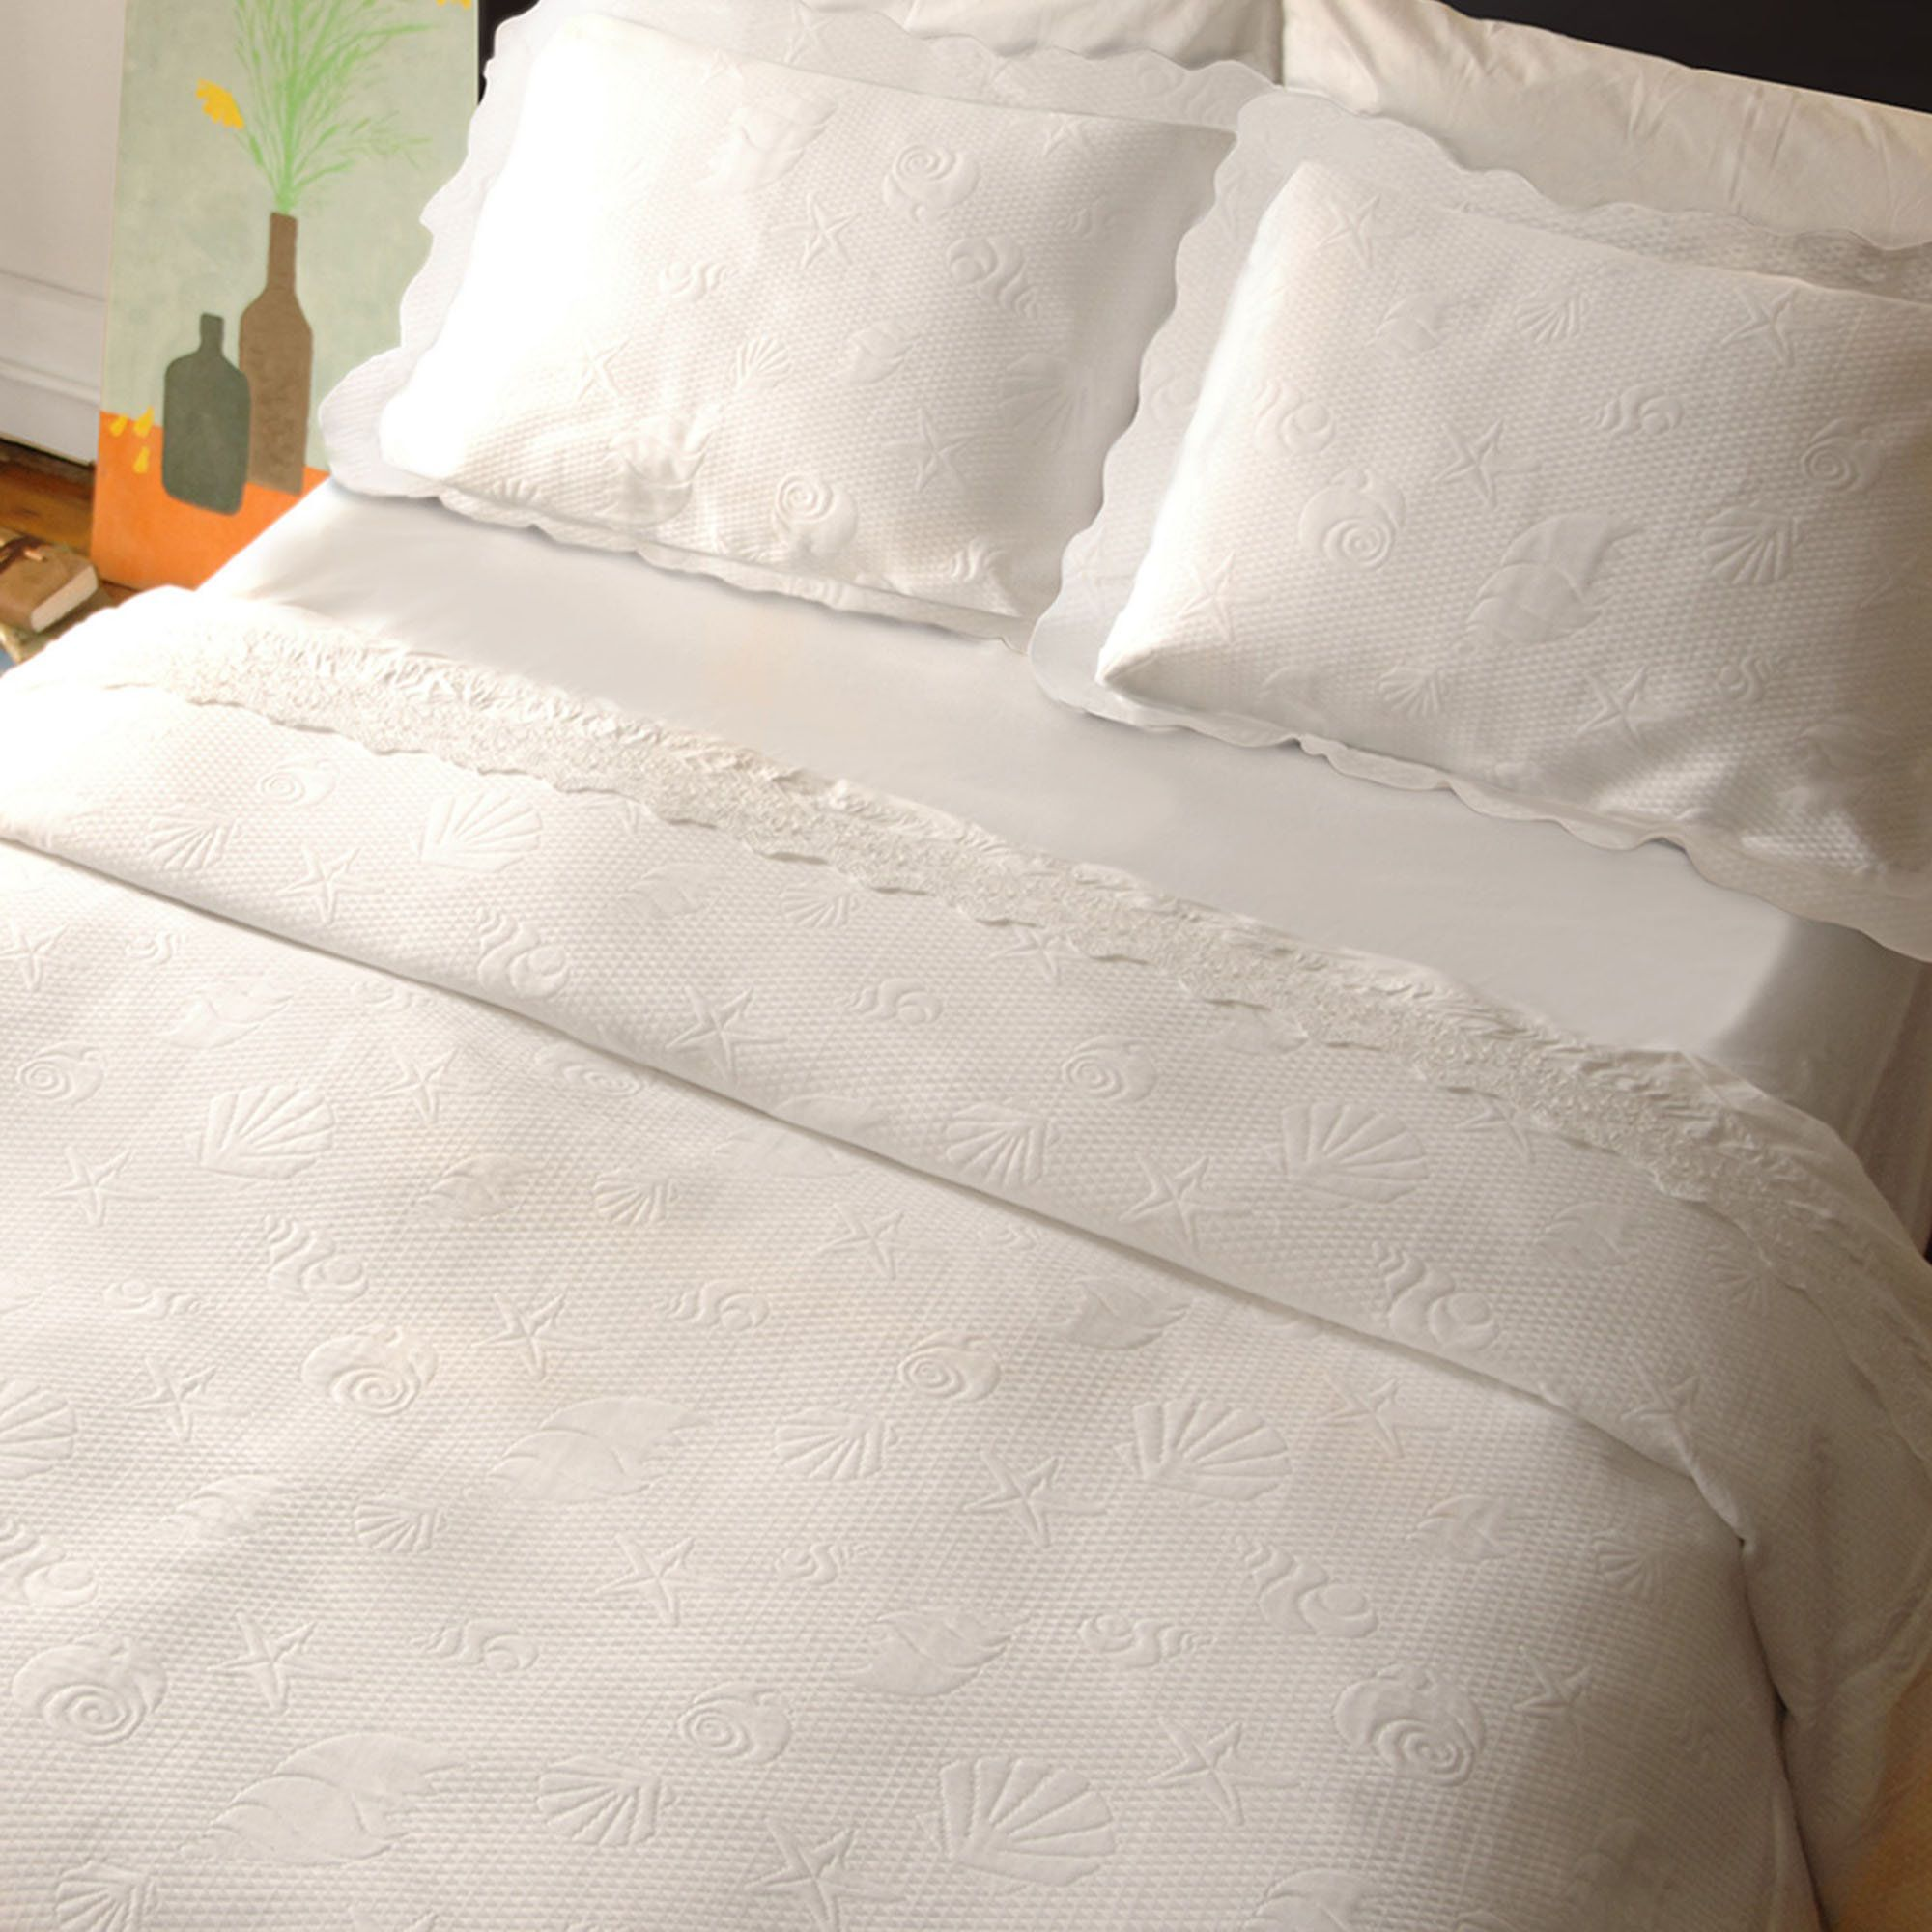 Superb The Sea Spray White Matelasse Coverlet Bedding Has A Soft Feel That Is  Perfect For Your Coastal Bedroom.